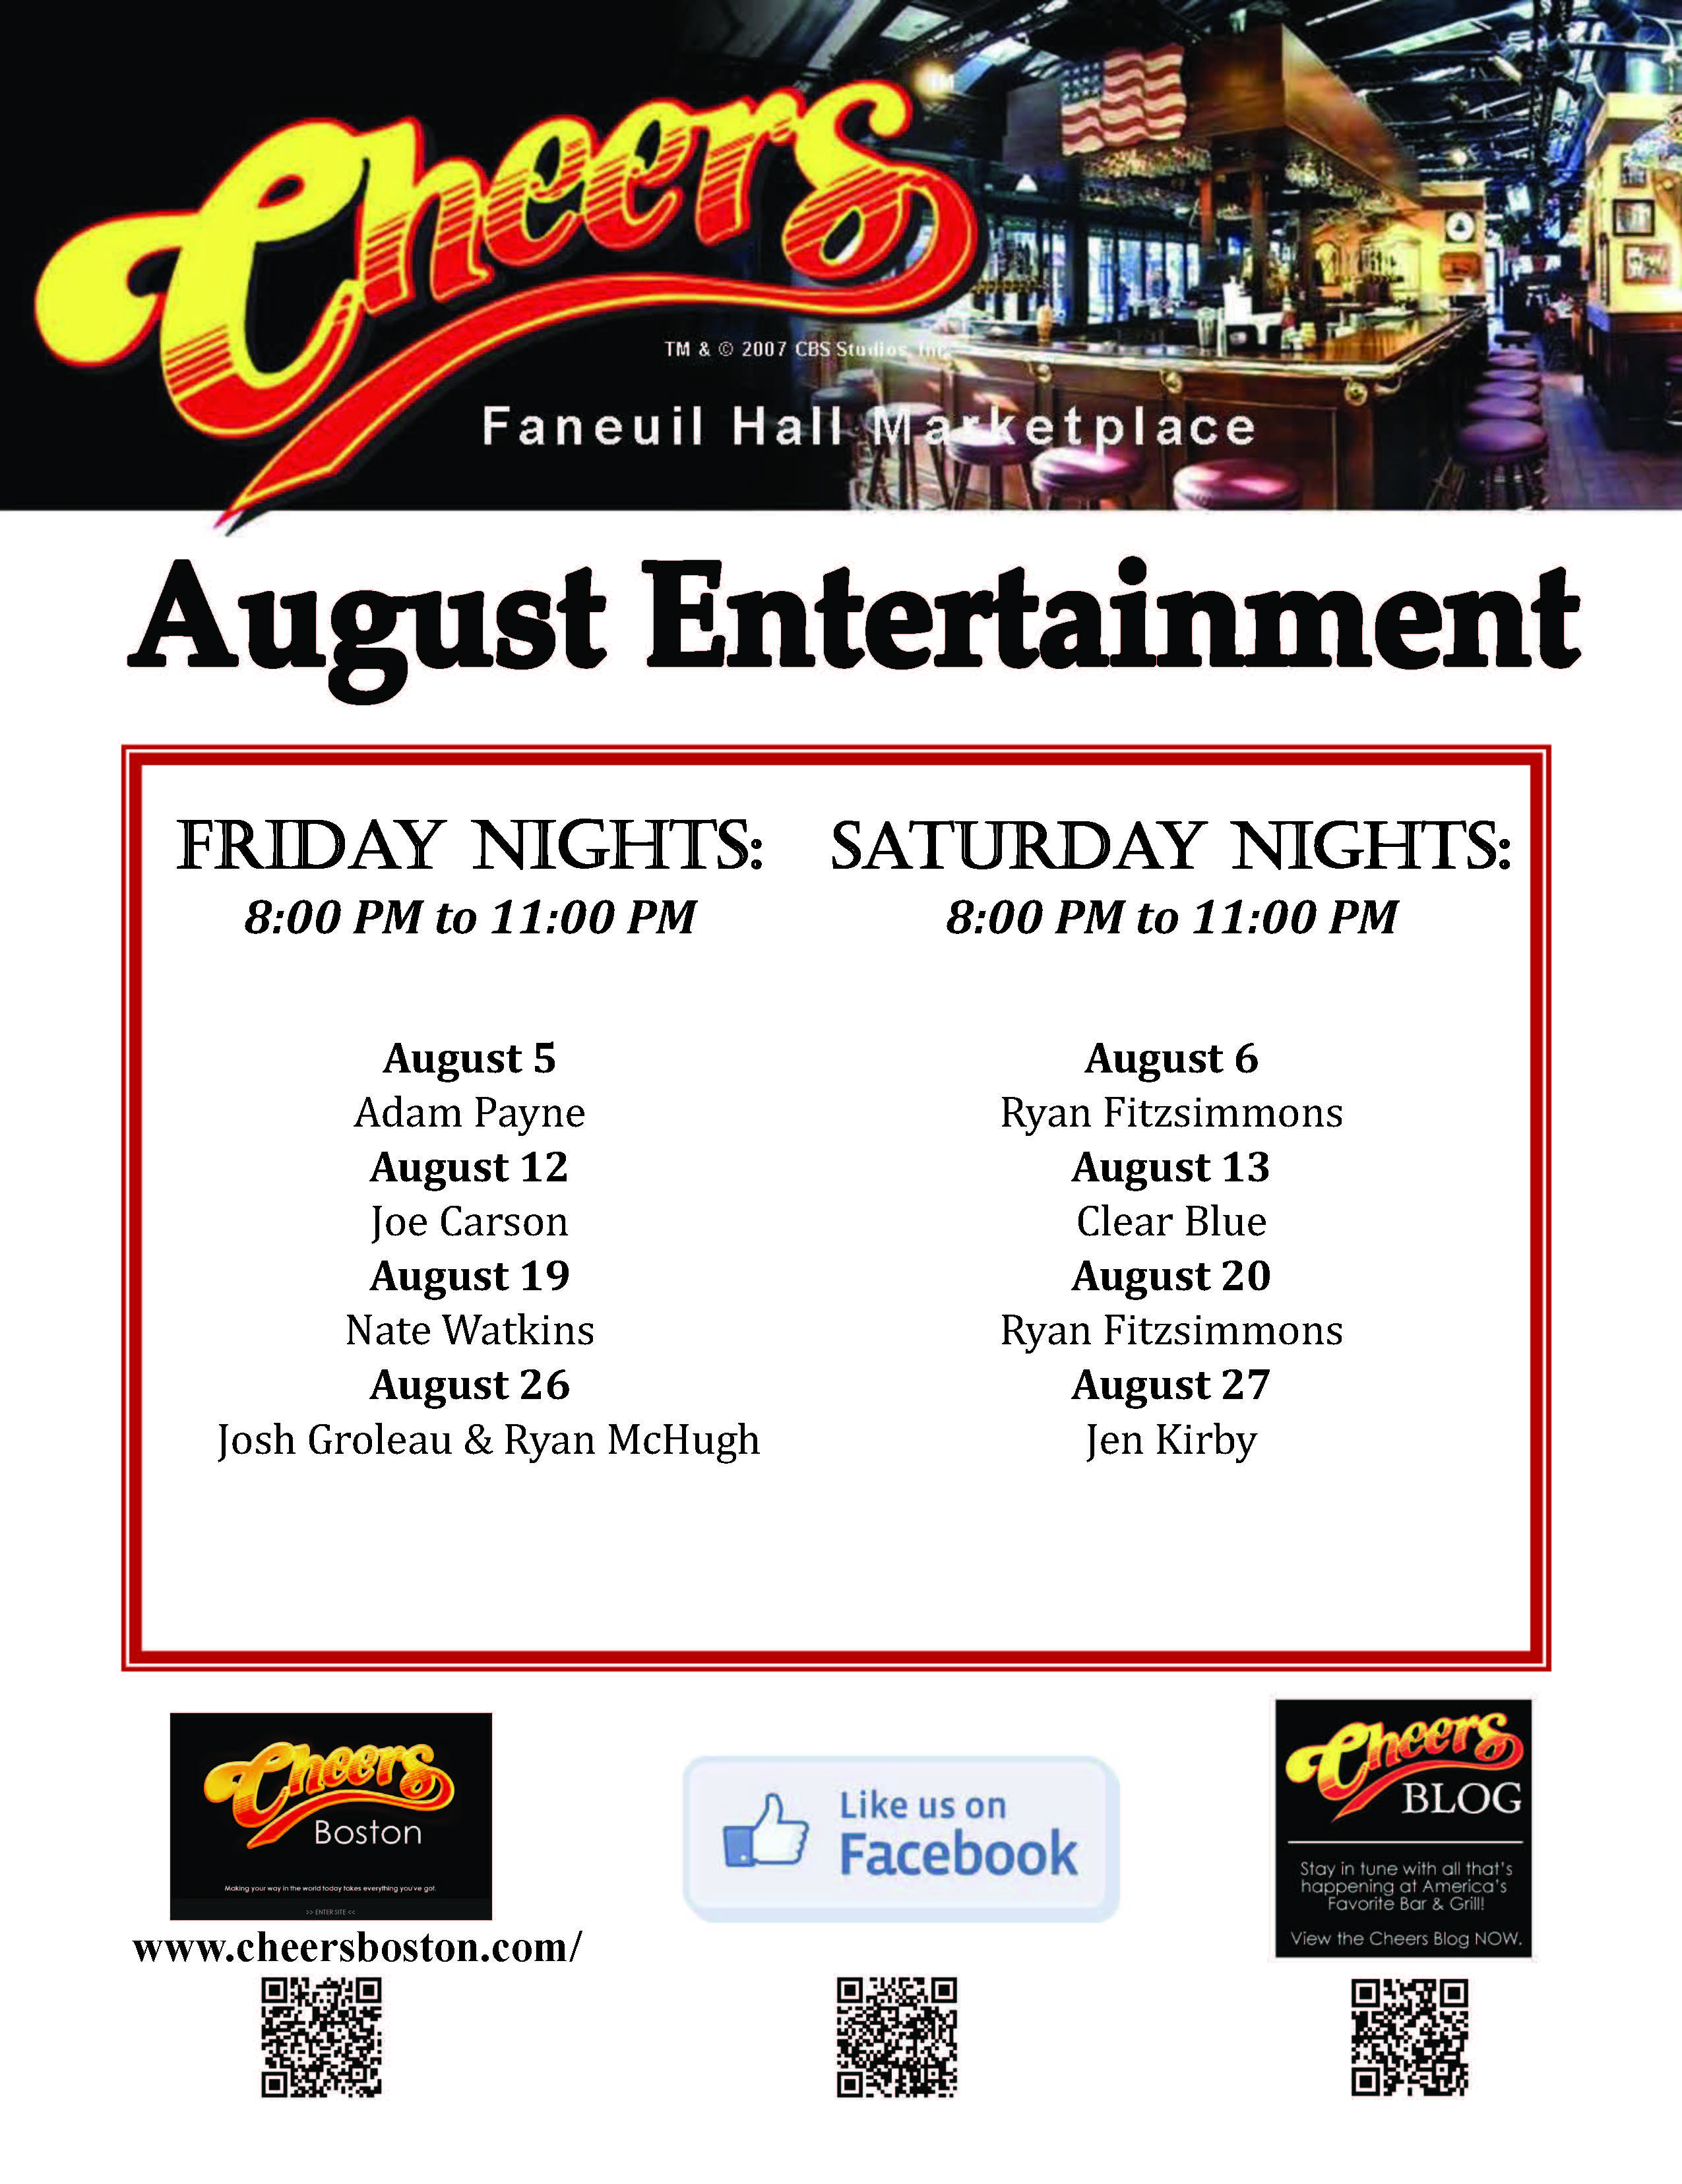 Join us at Cheers Faneuil Hall in the month of August for Live Entertainment